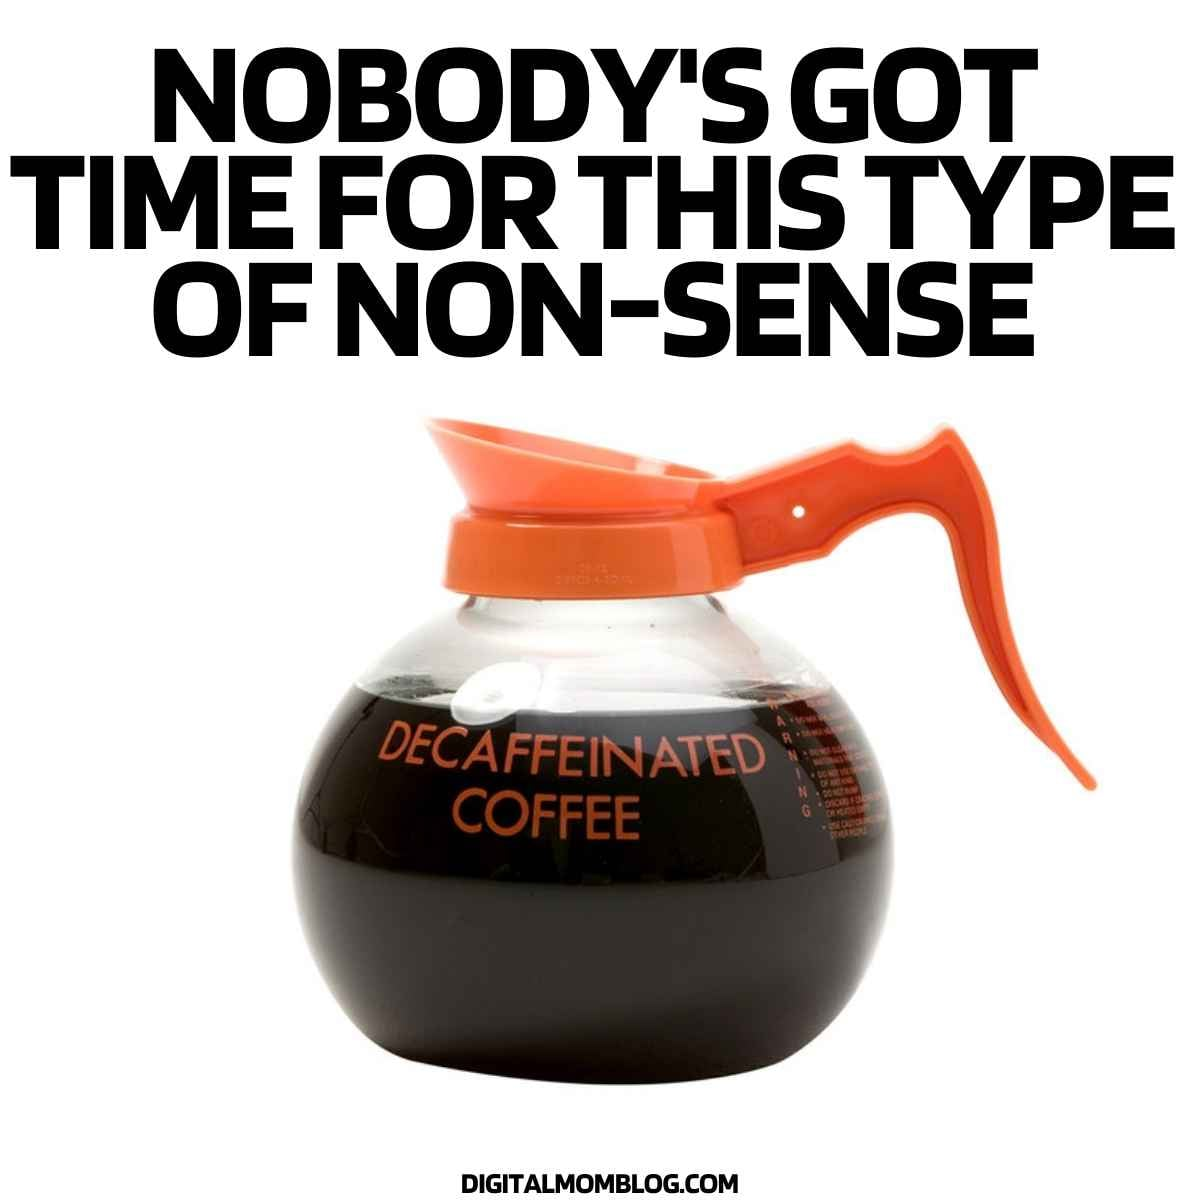 decaf coffee memes – nobody's got time for decaffeinated coffee